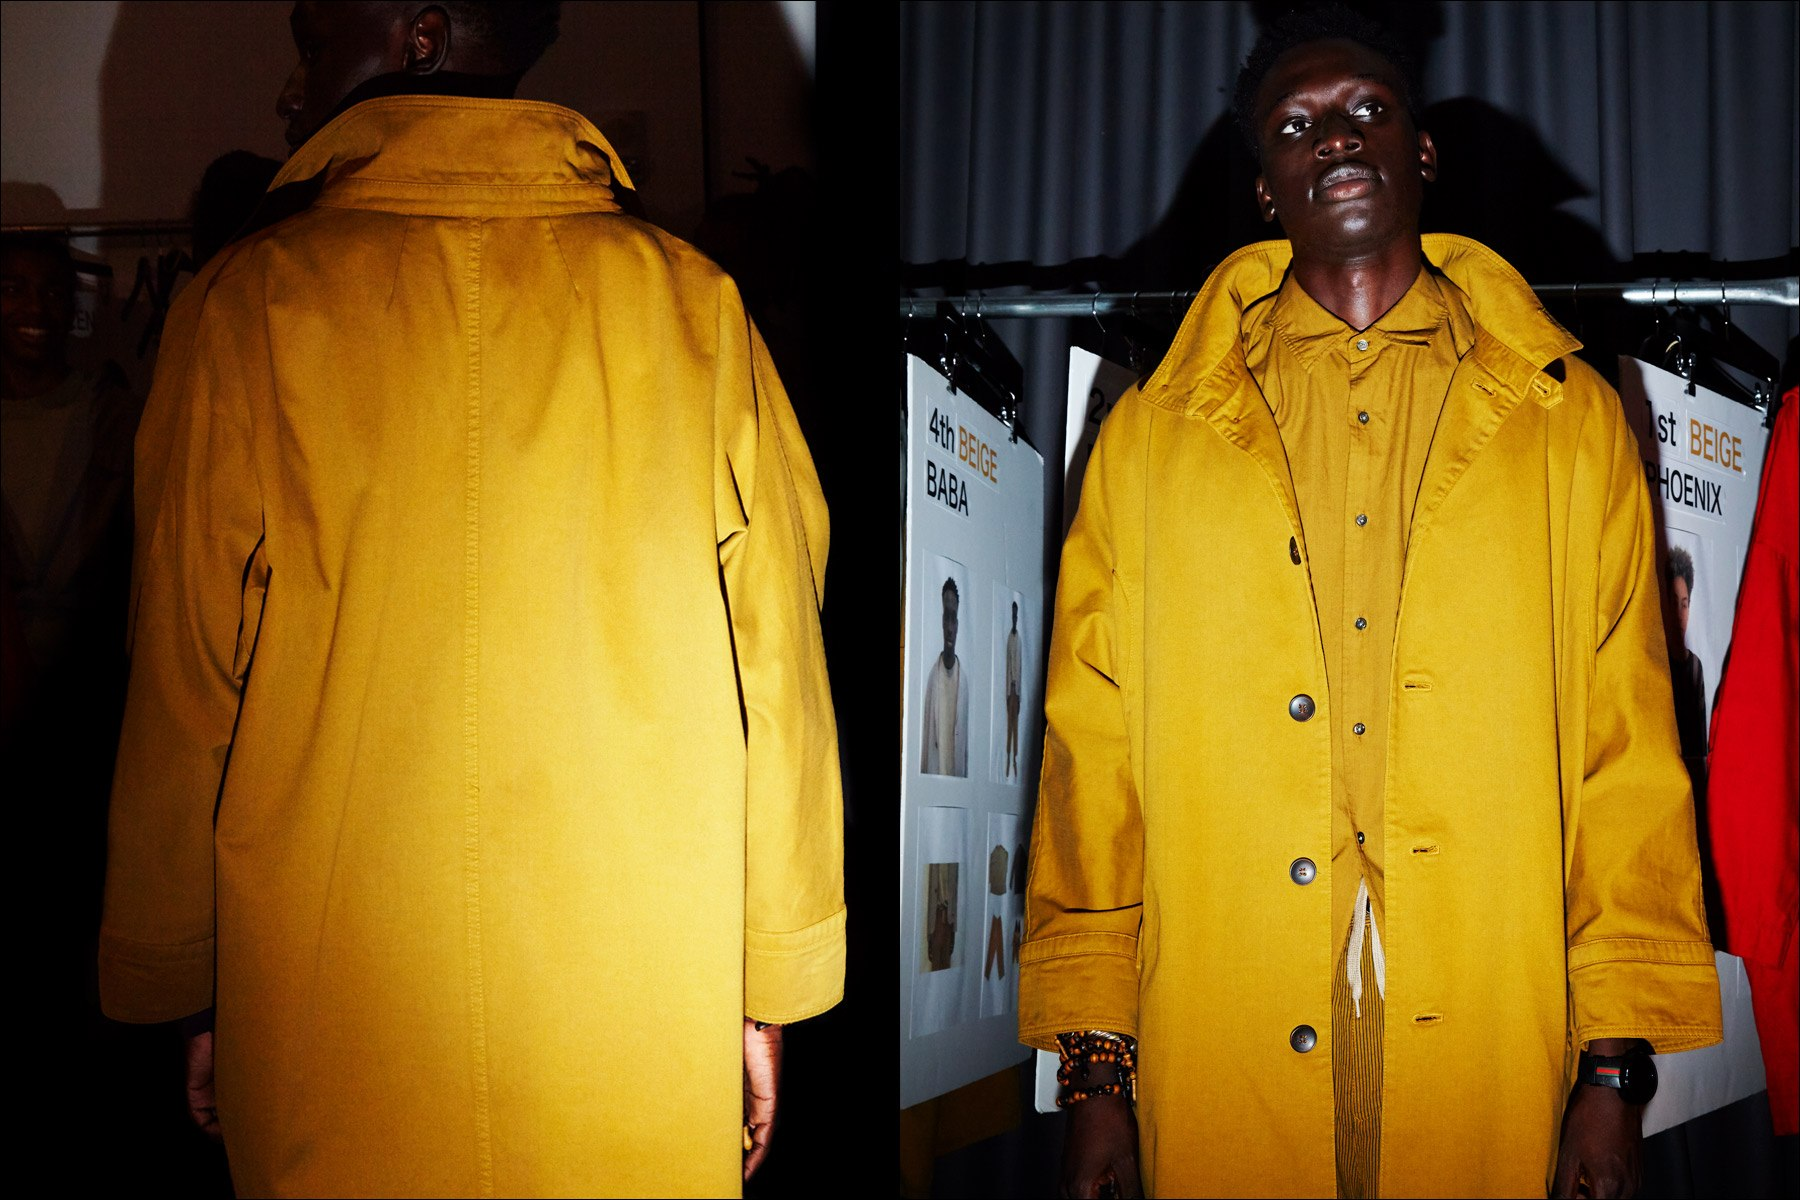 A mustard trench coat snapped backstage at Gustav Von Ashcenbach Spring 2018 menswear show by designer Robert Geller. Photographed by Alexander Thompson for Ponyboy magazine NY.